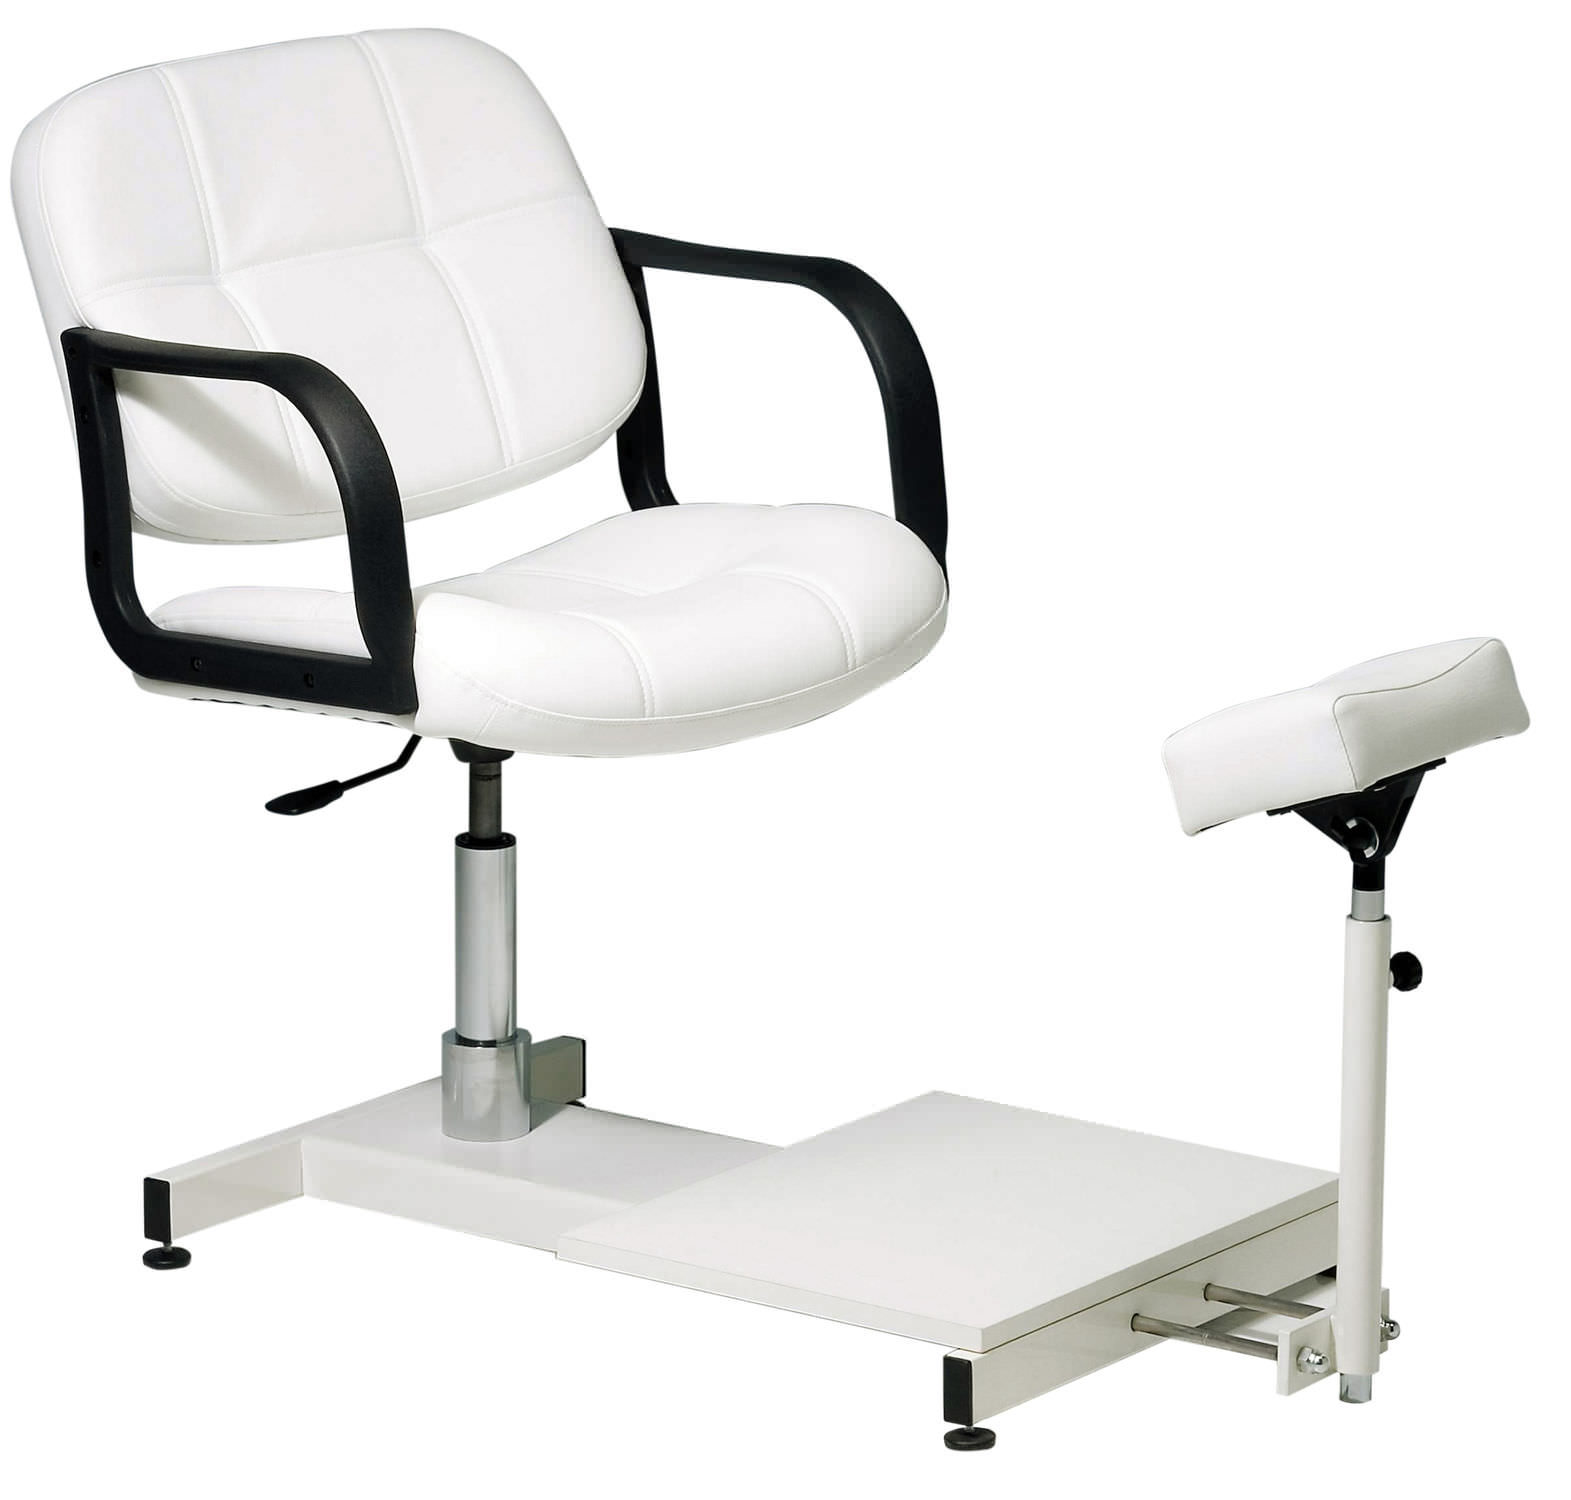 Vinyl pedicure chair with hydraulic pump CONFORT 793 BMP Srl